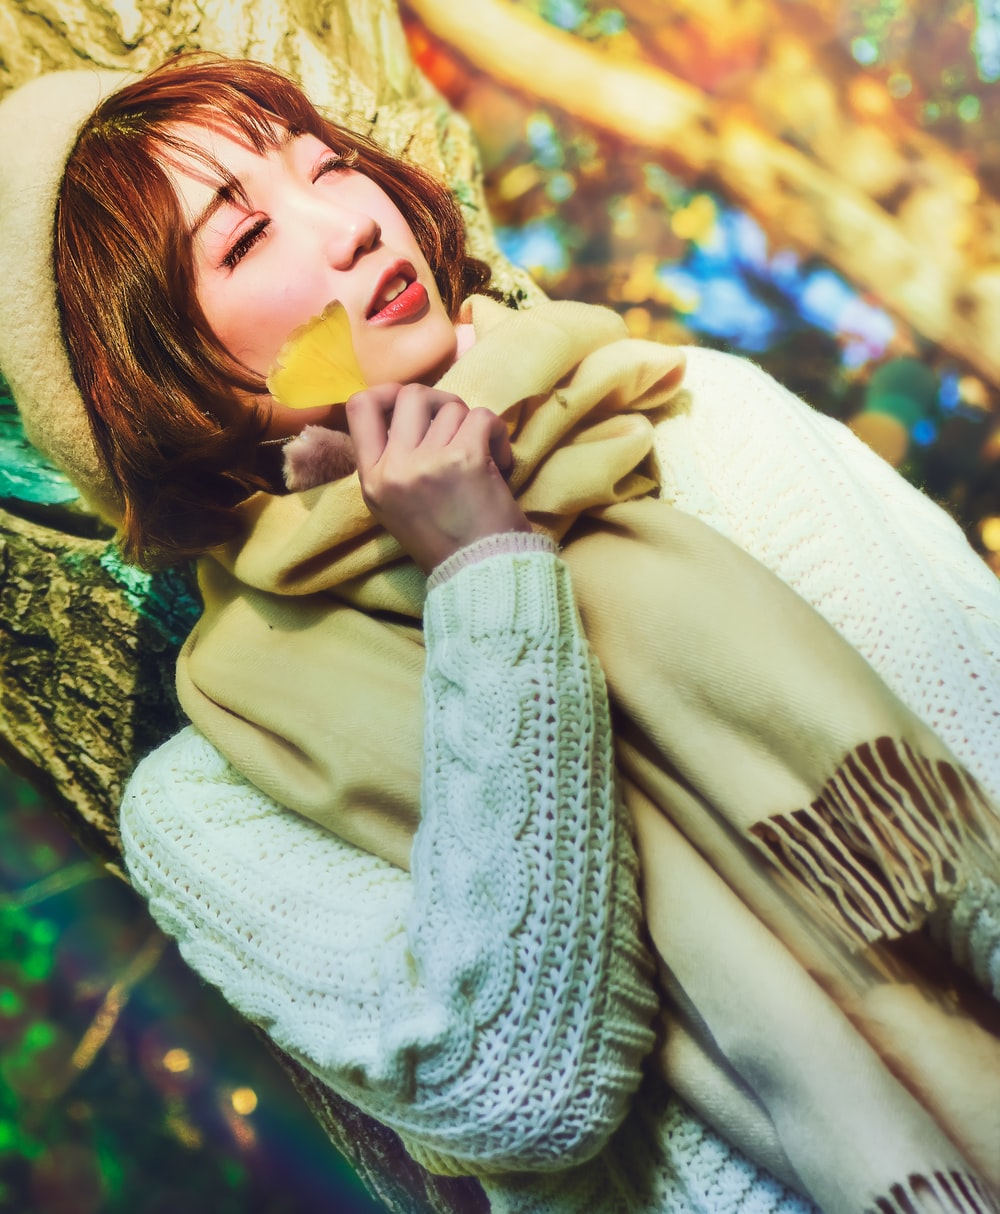 woman in white knit sweater holding yellow flower